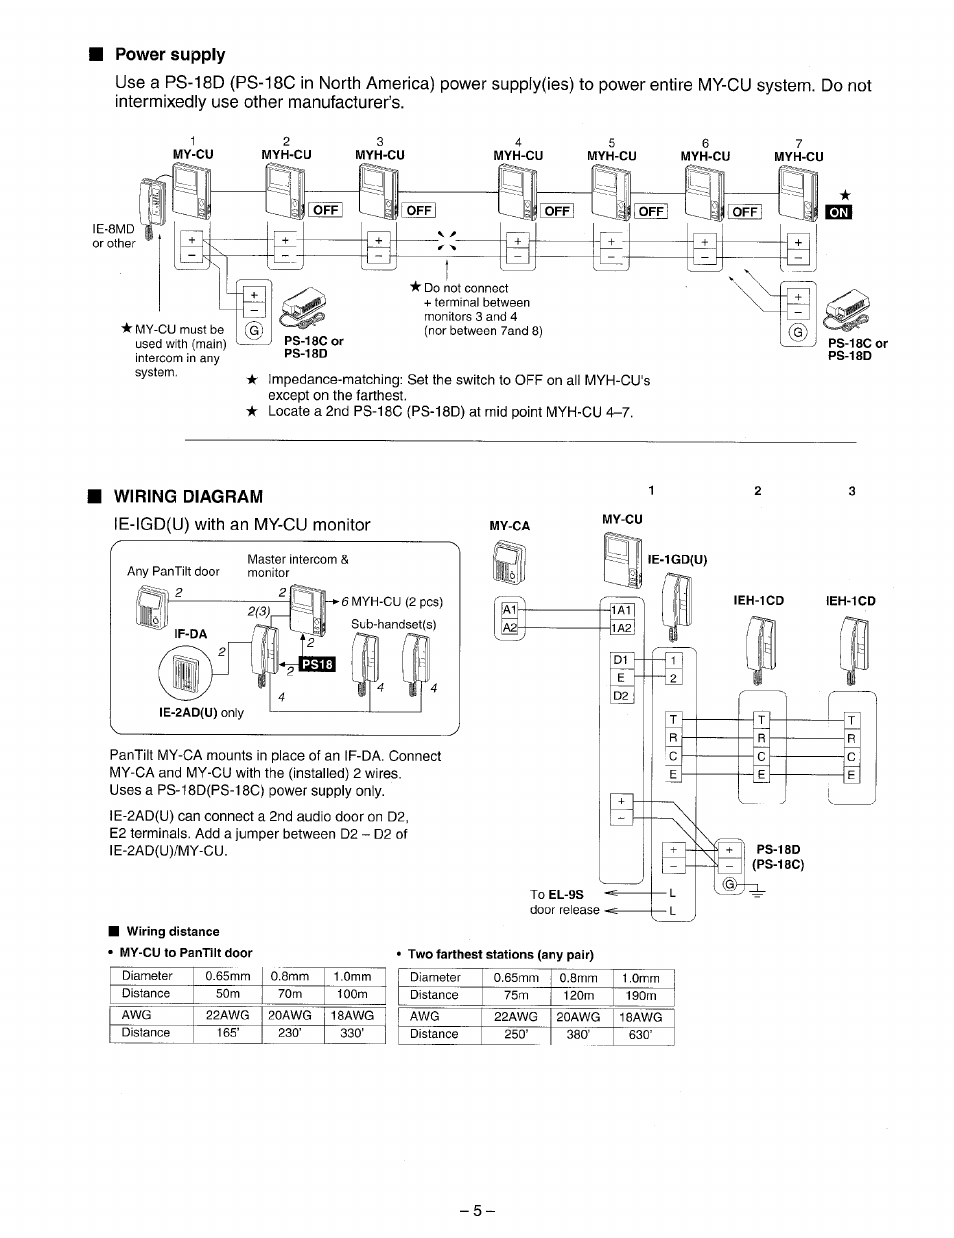 aiphone model c ml wiring diagram 2016 mitsubishi triton stereo electricity site power supply my cu user manual page 5